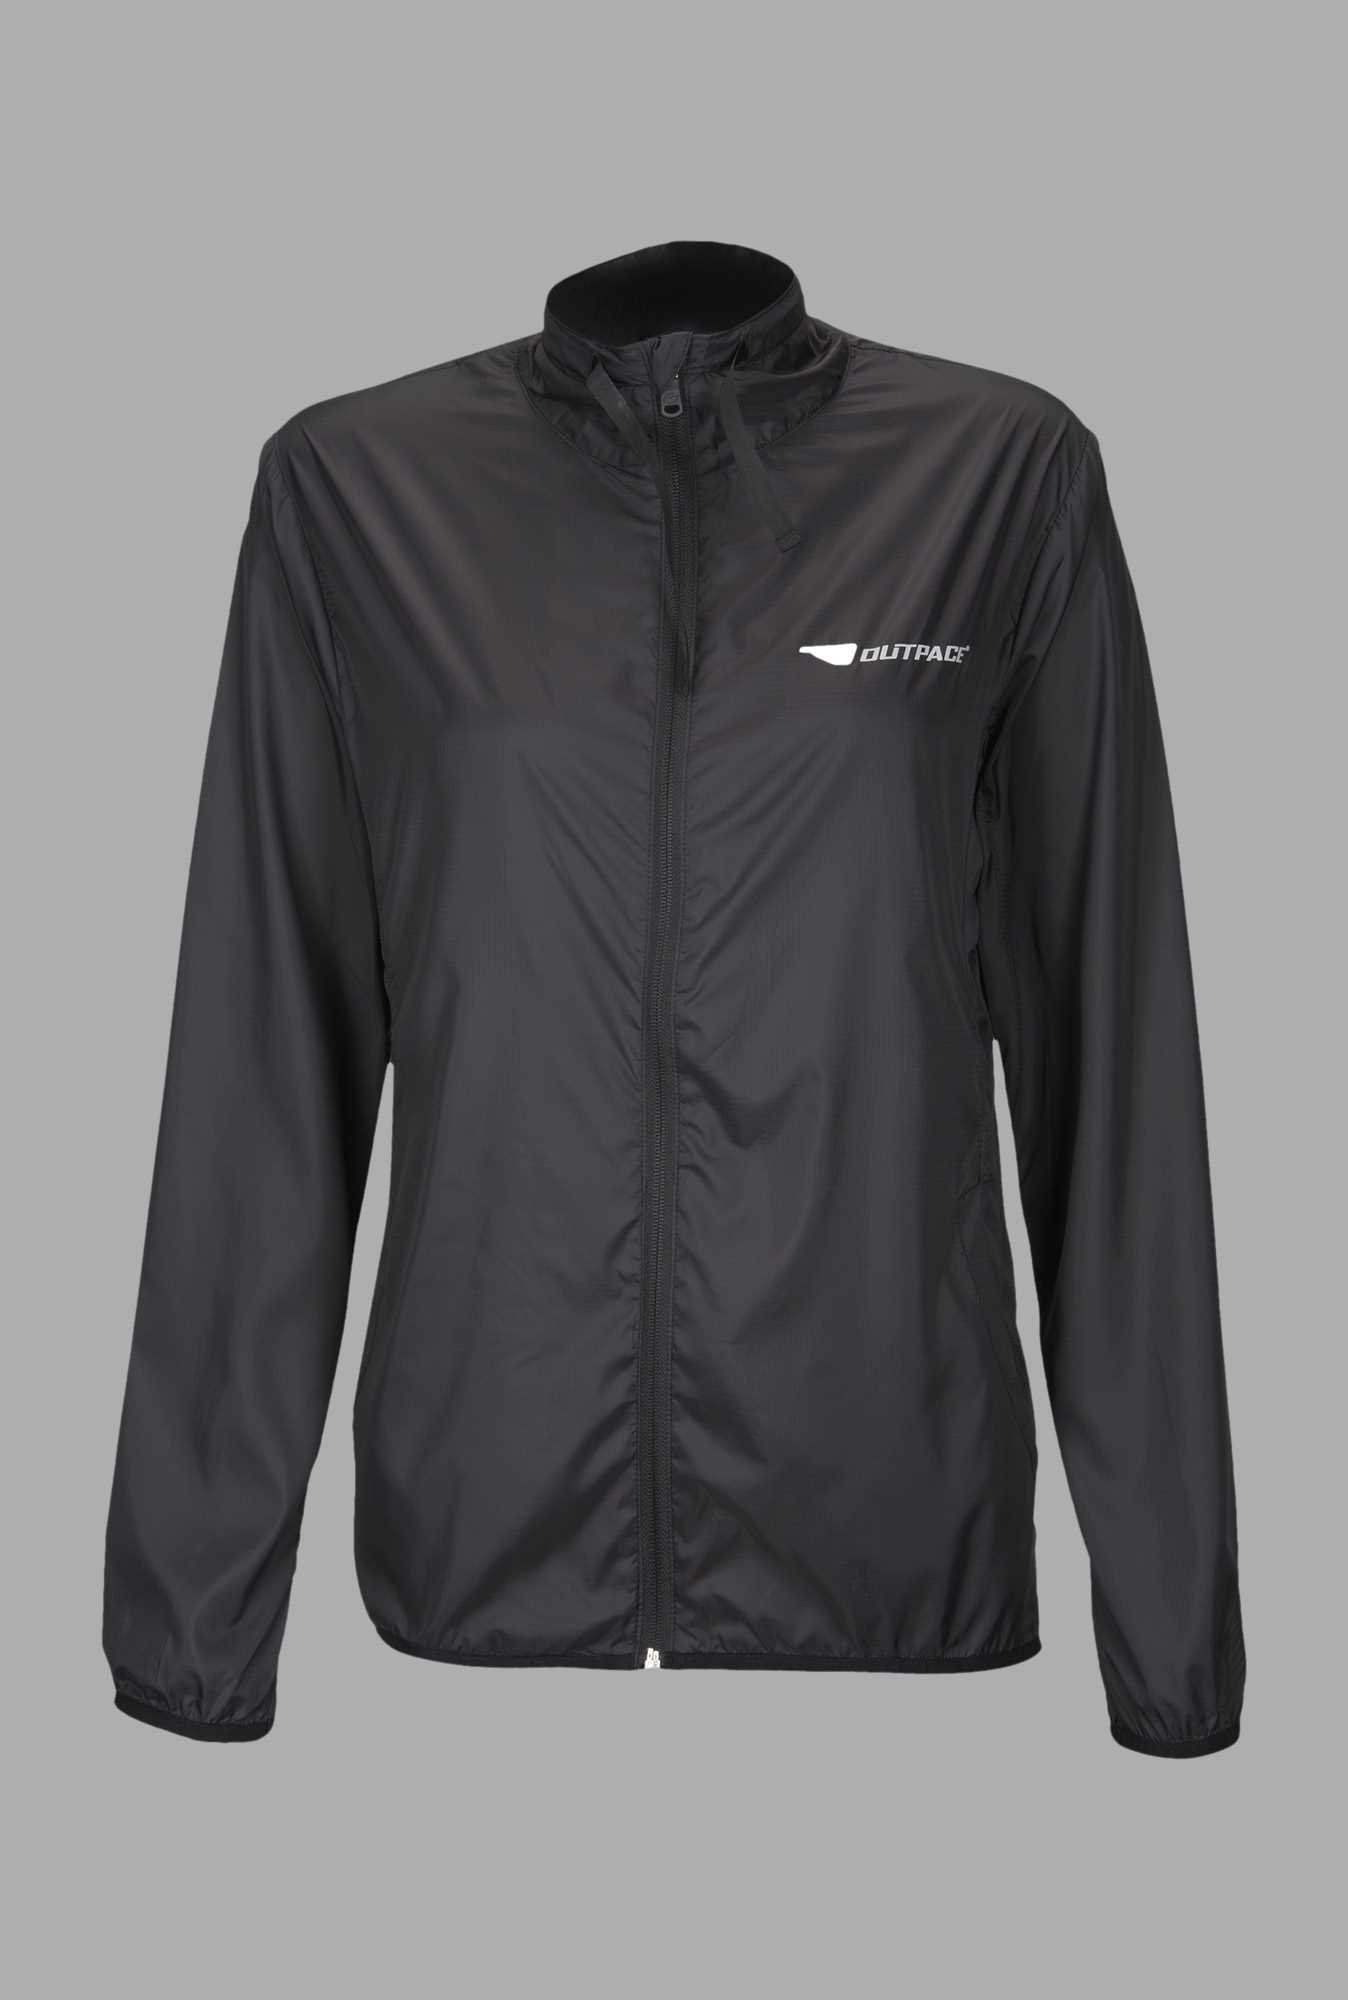 Outpace Black Running Windbreaker Jacket